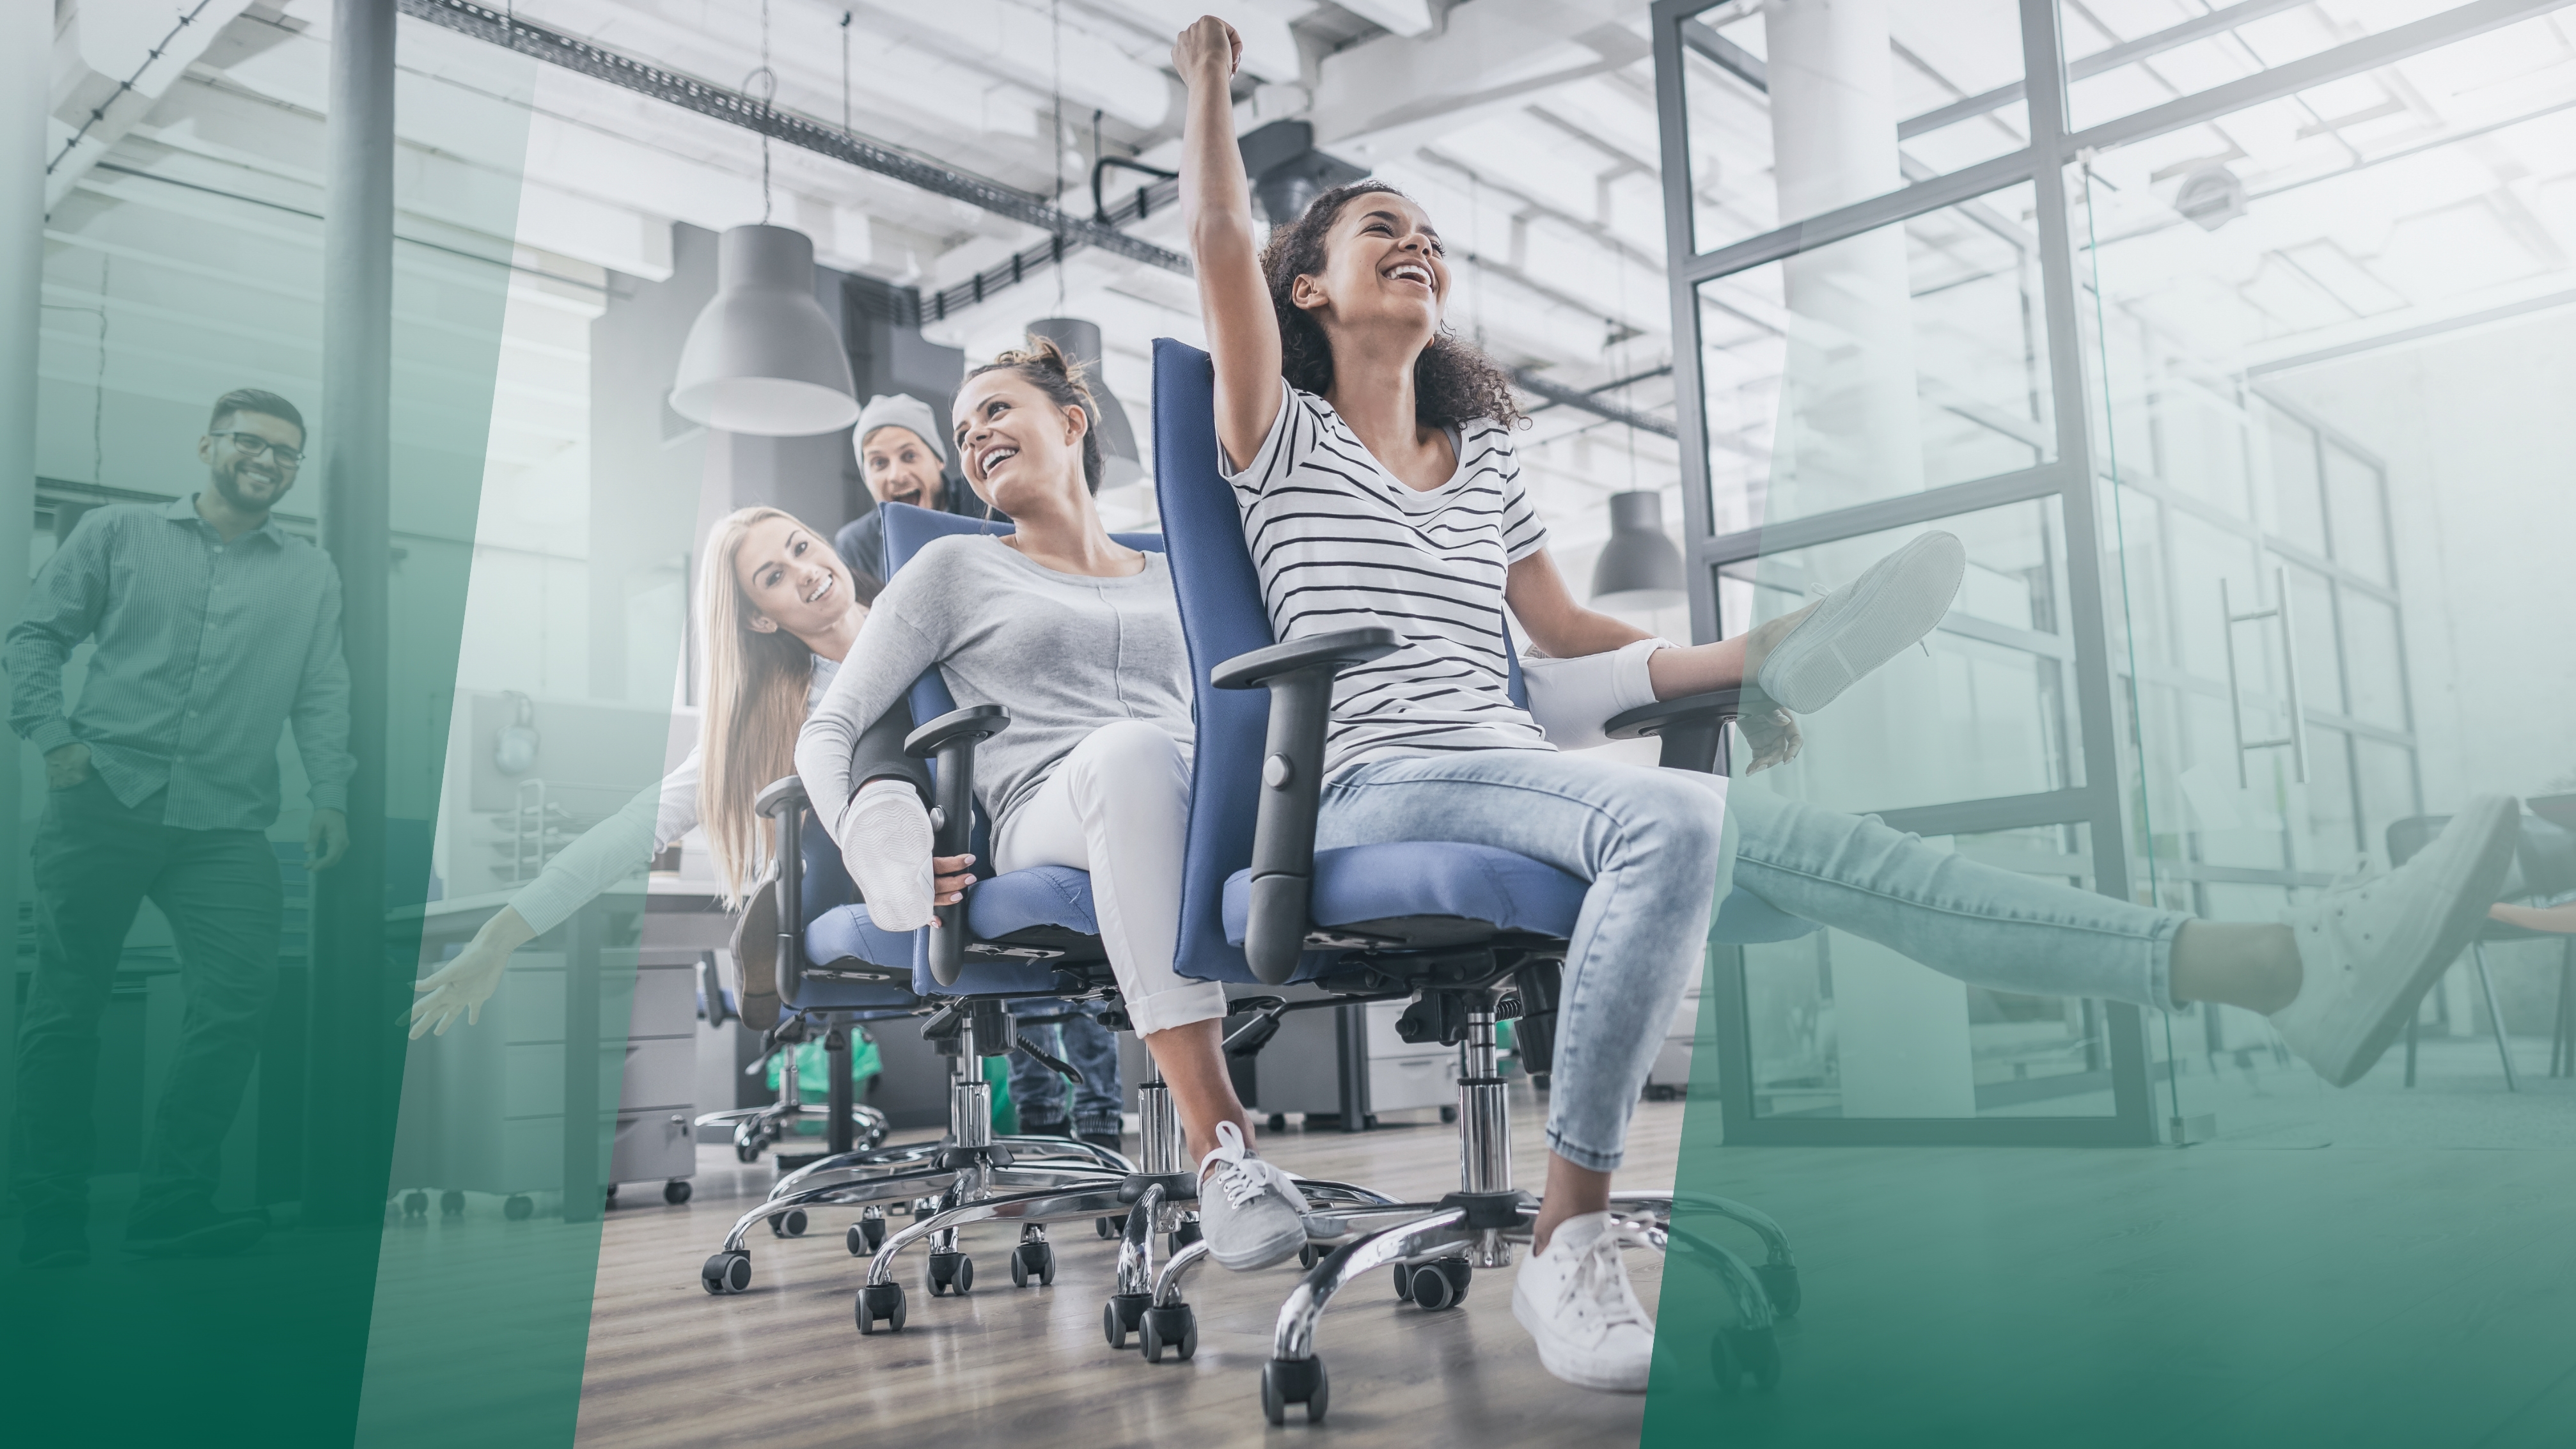 Can the workspace increase your teams' well-being at work?